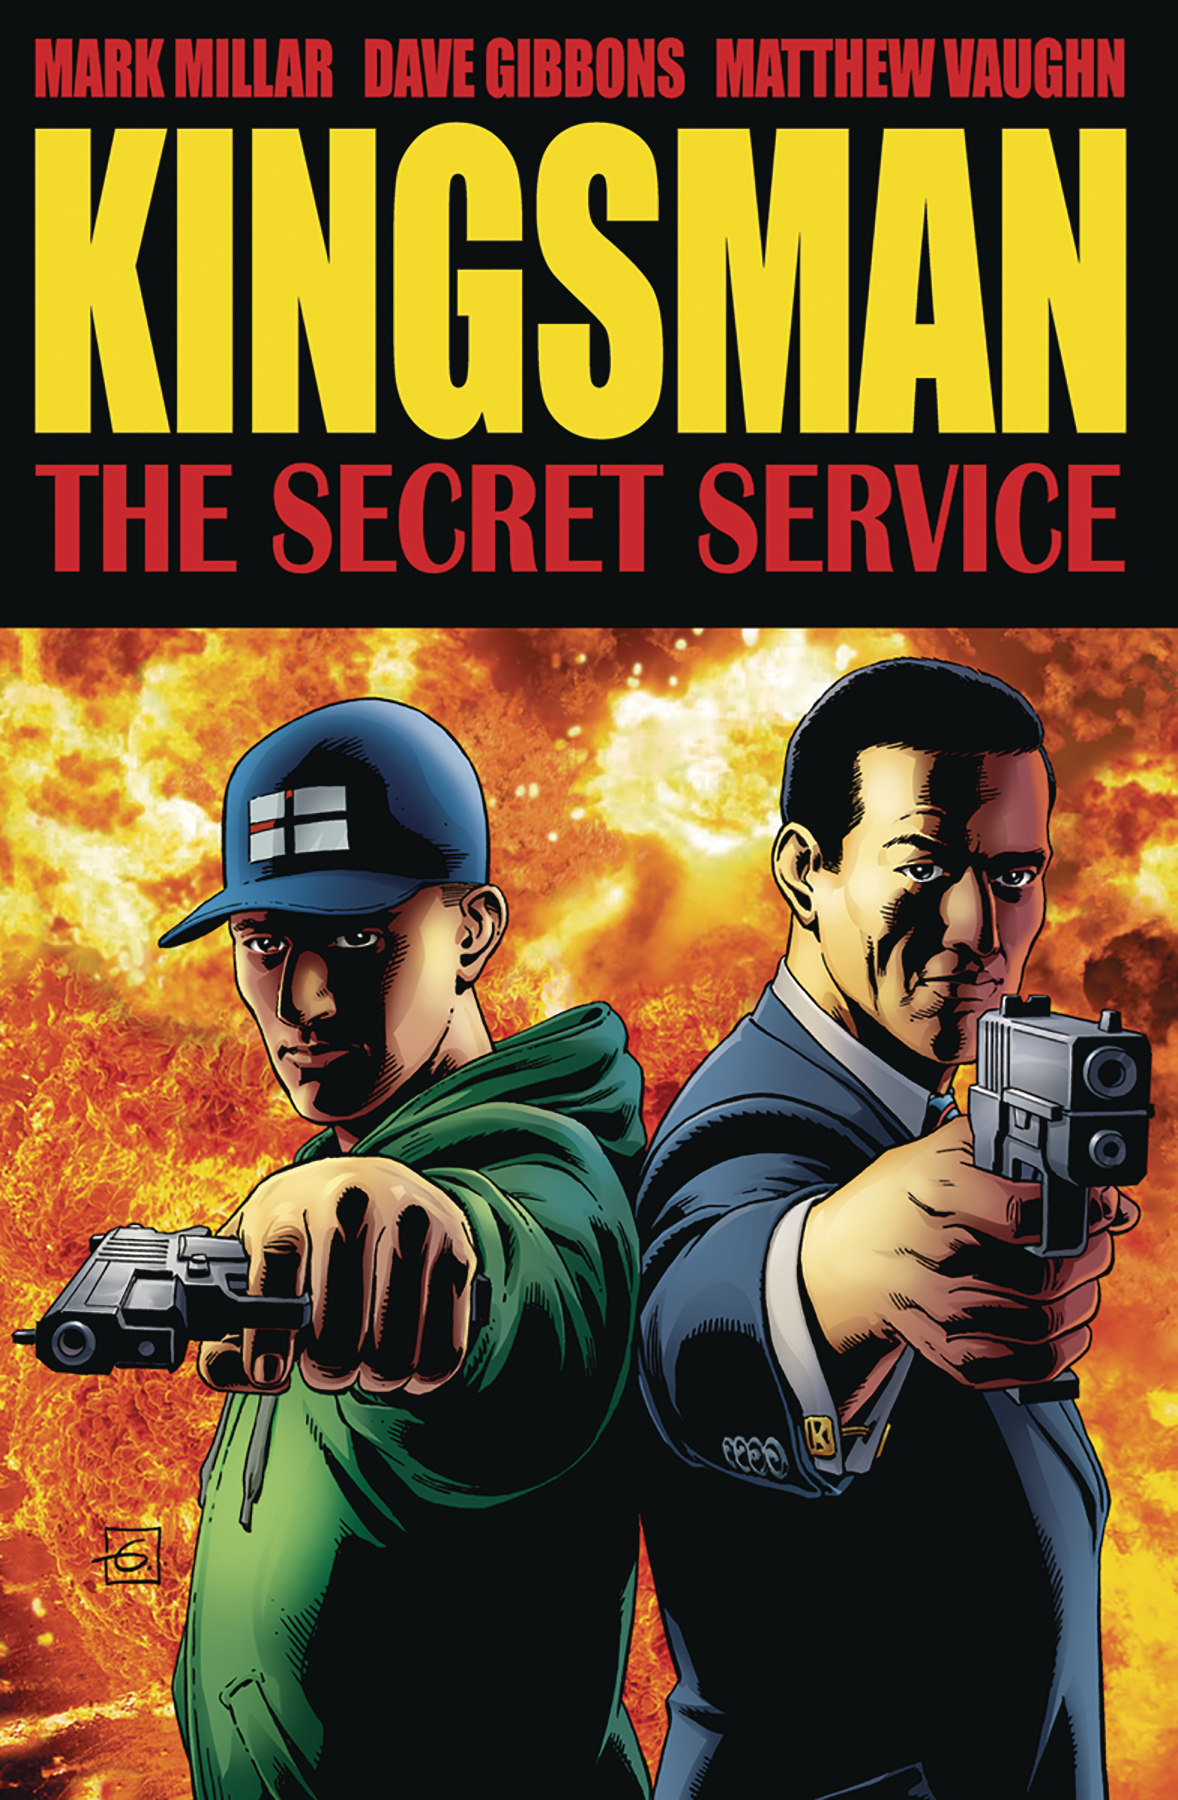 KINGSMAN SECRET SERVICE TP VOL 01 CVR A GIBBONS